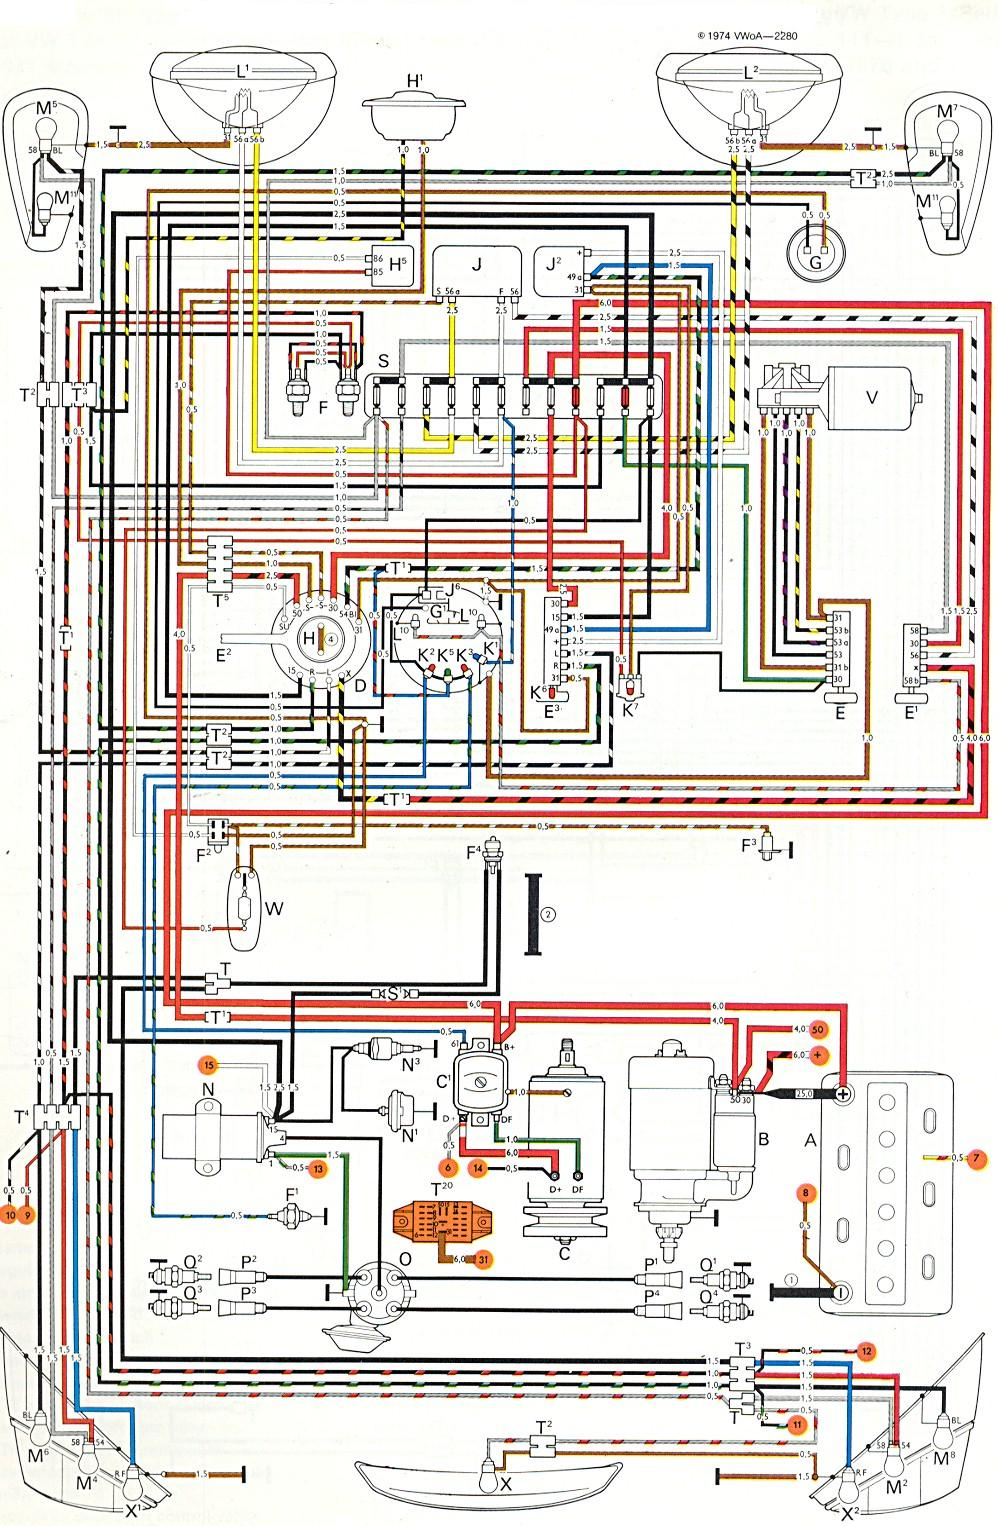 1974 Vw Beetle Engine Diagram Data Wiring Ford Ignition System 1999 72 Super Diagrams Schematic 46 1972